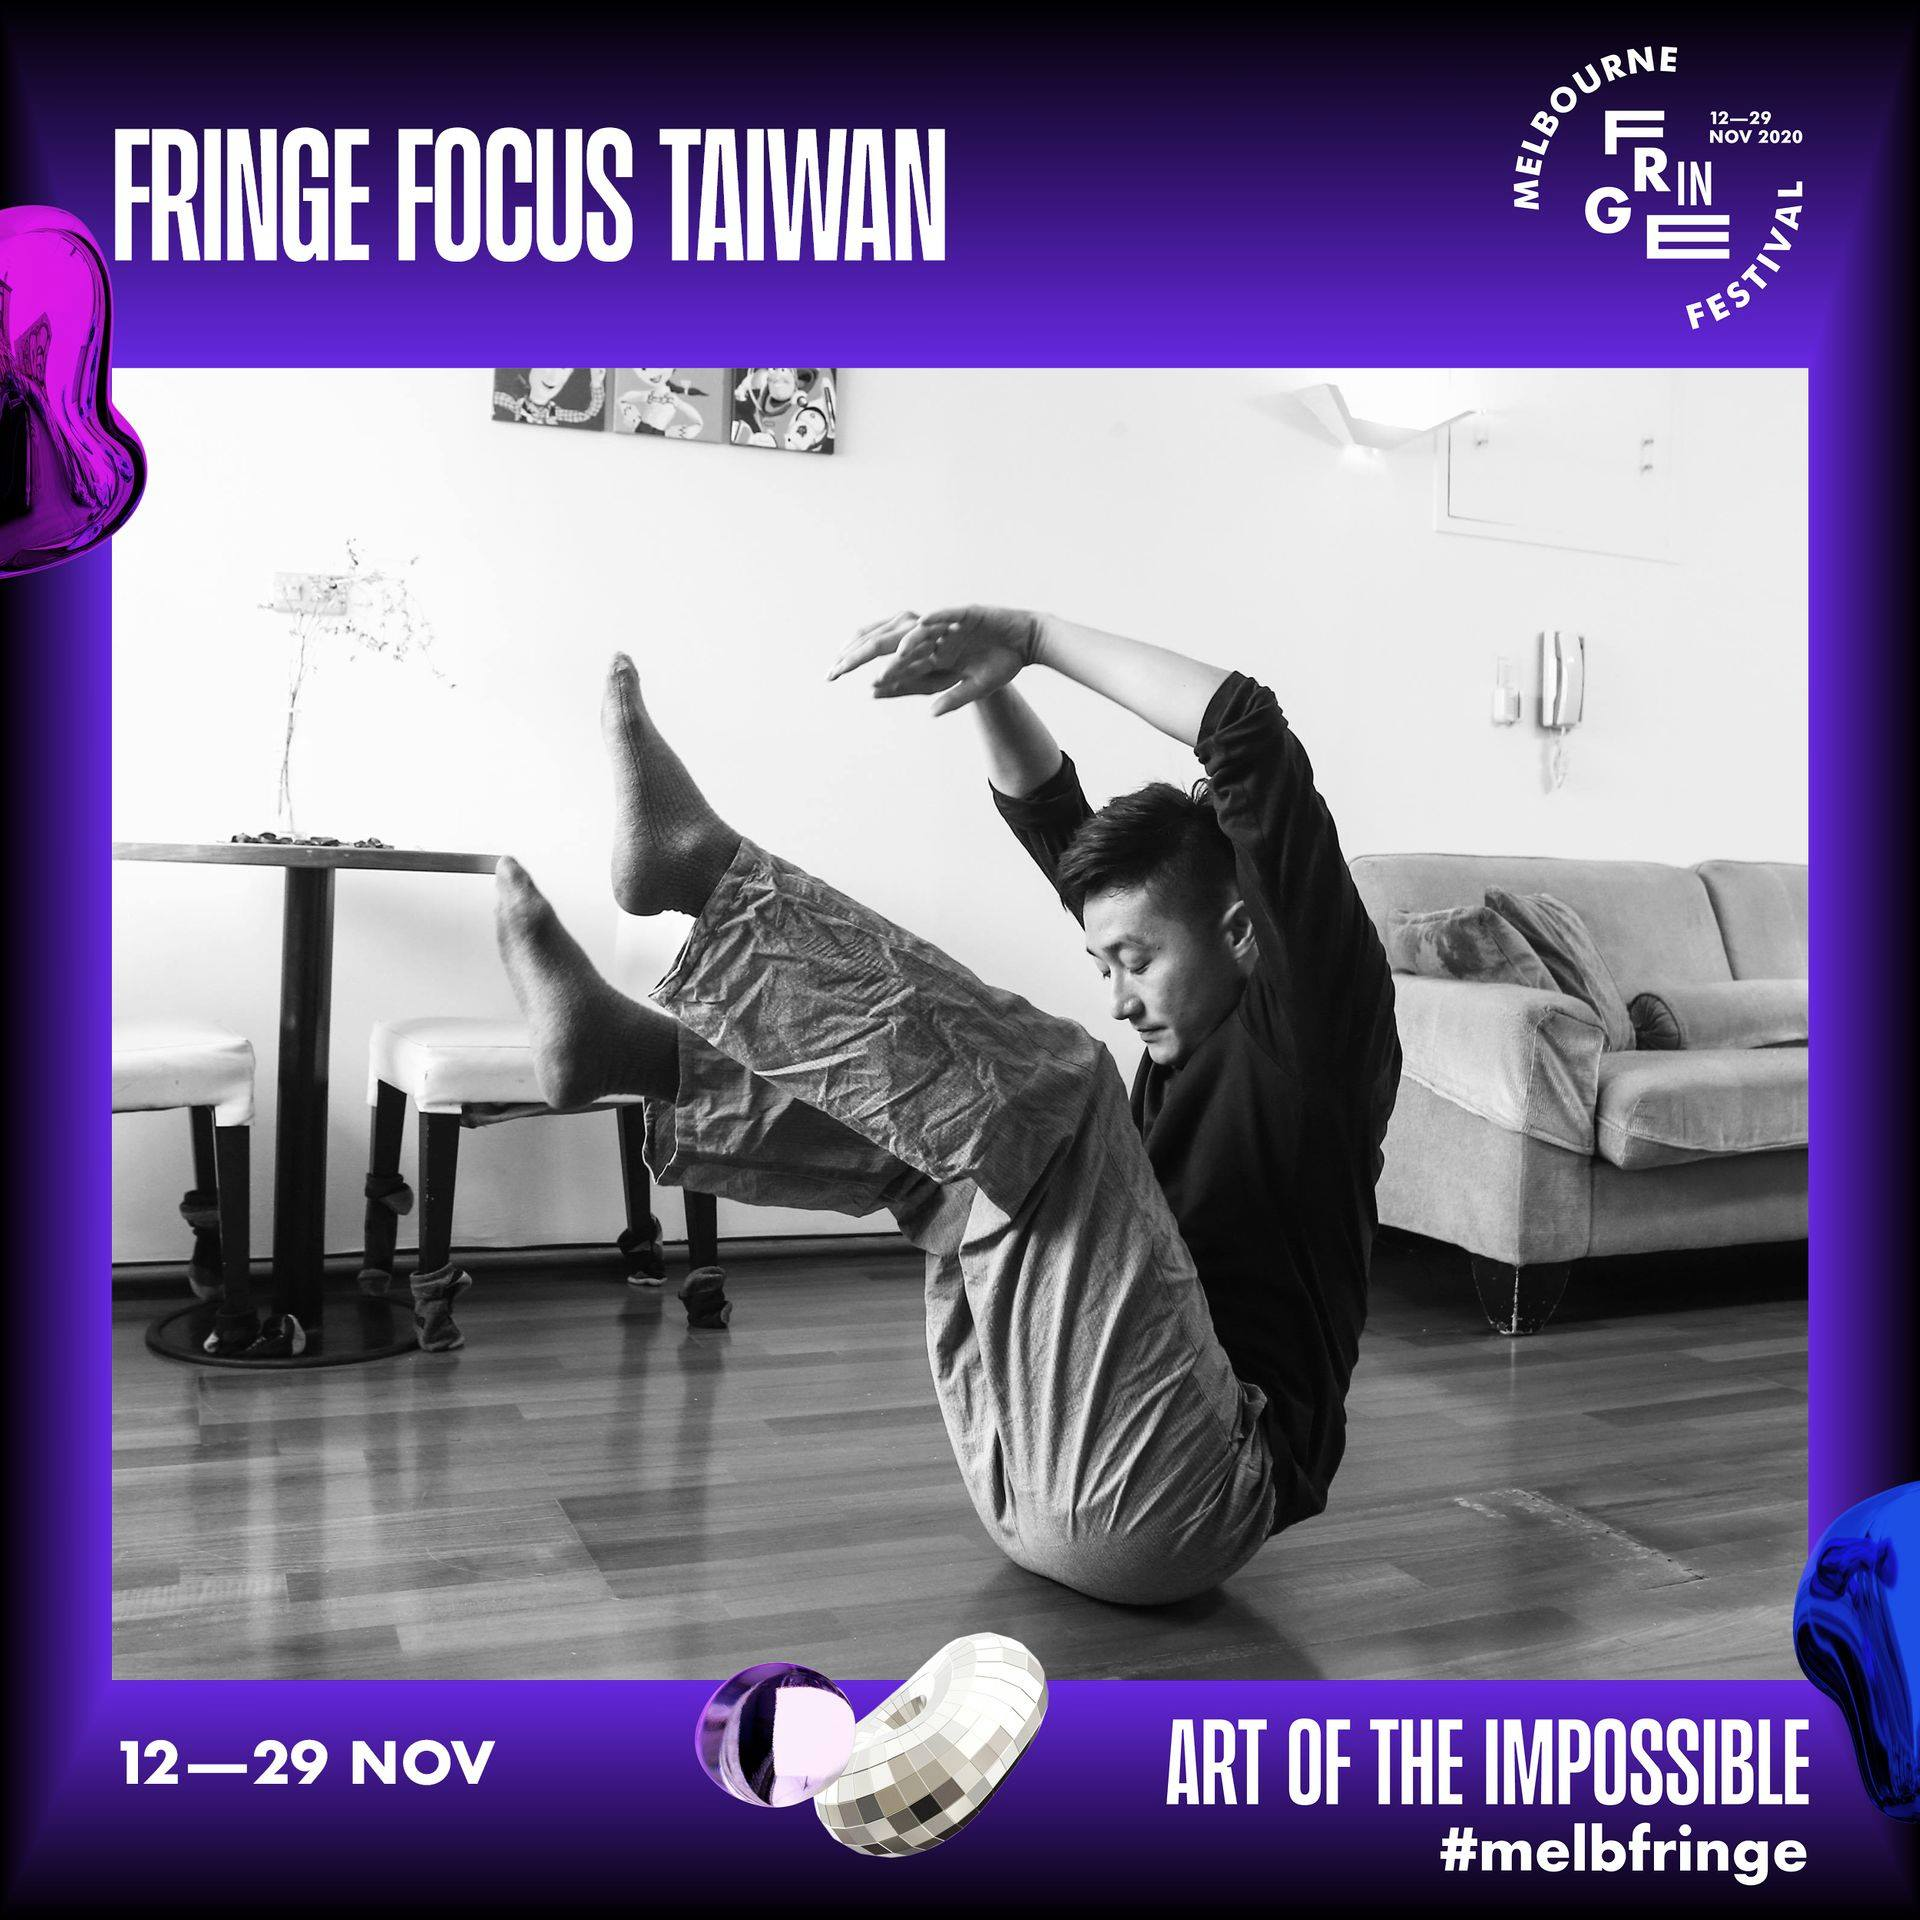 Emerging and contemporary Taiwanese art showcased at Melbourne Fringe